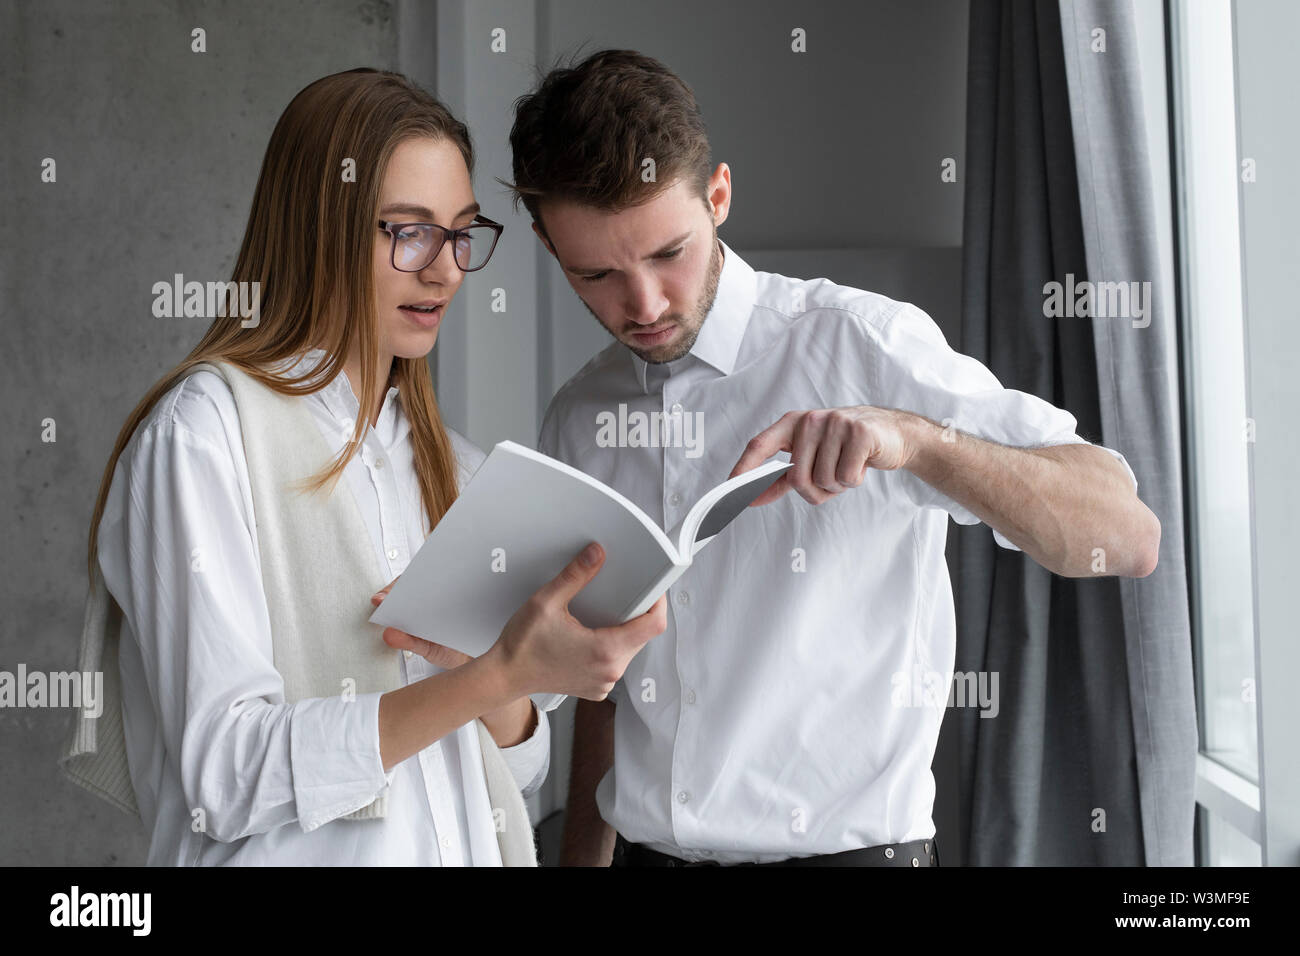 Businessman pointing to page in book for colleague - Stock Image